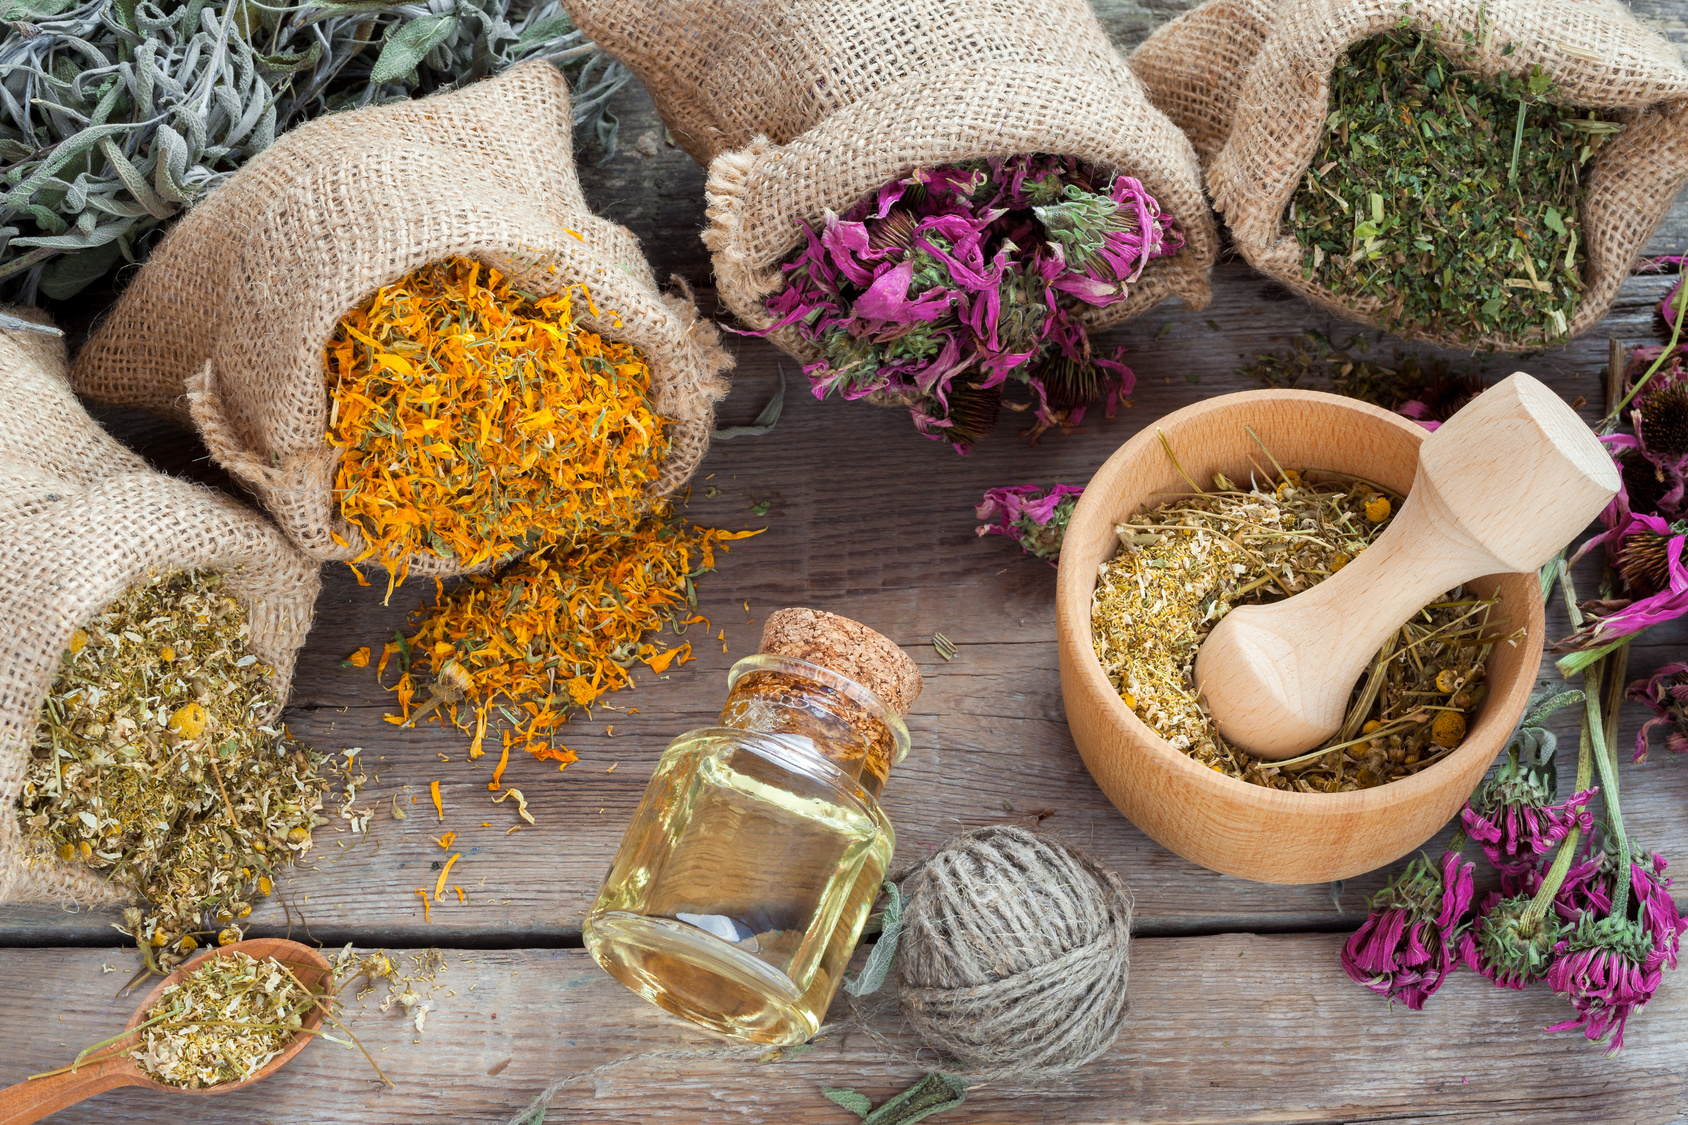 Healing herbs in hessian bags, wooden mortar with chamomile and